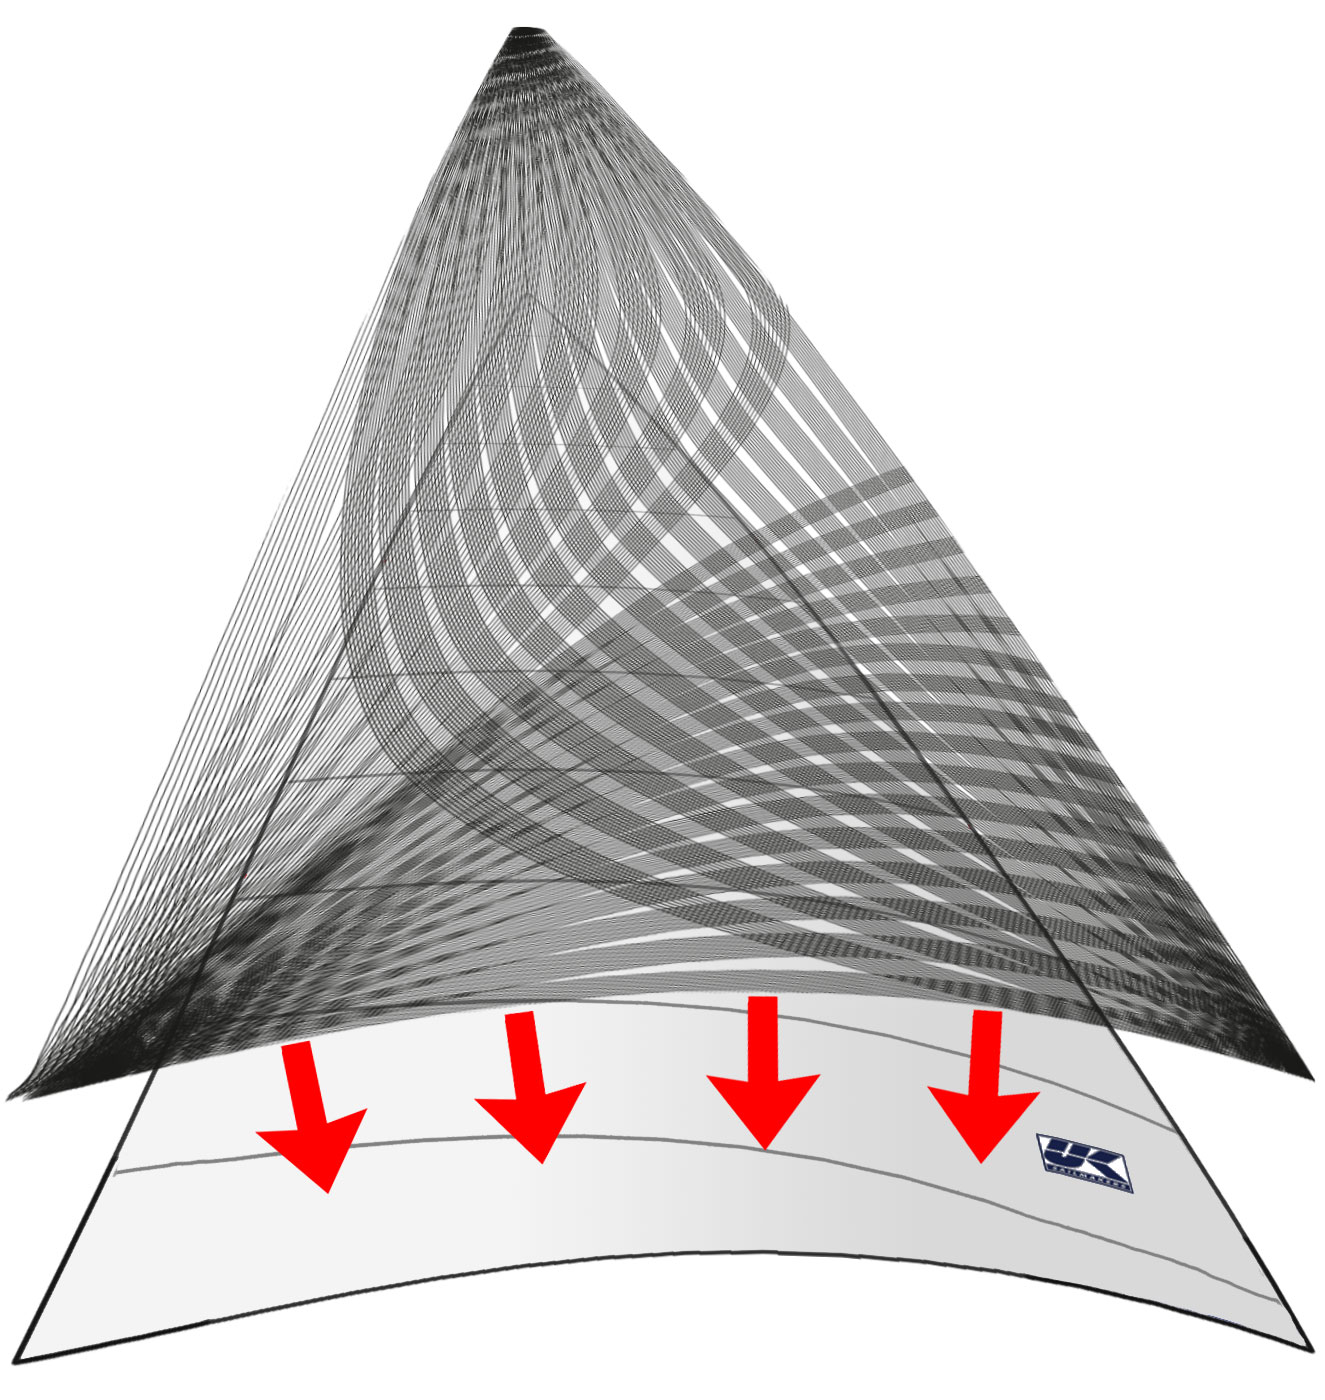 X-Drive is a two-part construction system. As the diagram shows, the sail is made from a lightweight material cut into cross-cut panels that, when put together with broad seaming, achieve the 3-D shape created by the sail designer. Next the sail is reinforced with a grid of narrow, high-strength, low-stretch fibers that are bonded to the sail up to 11 at a time.